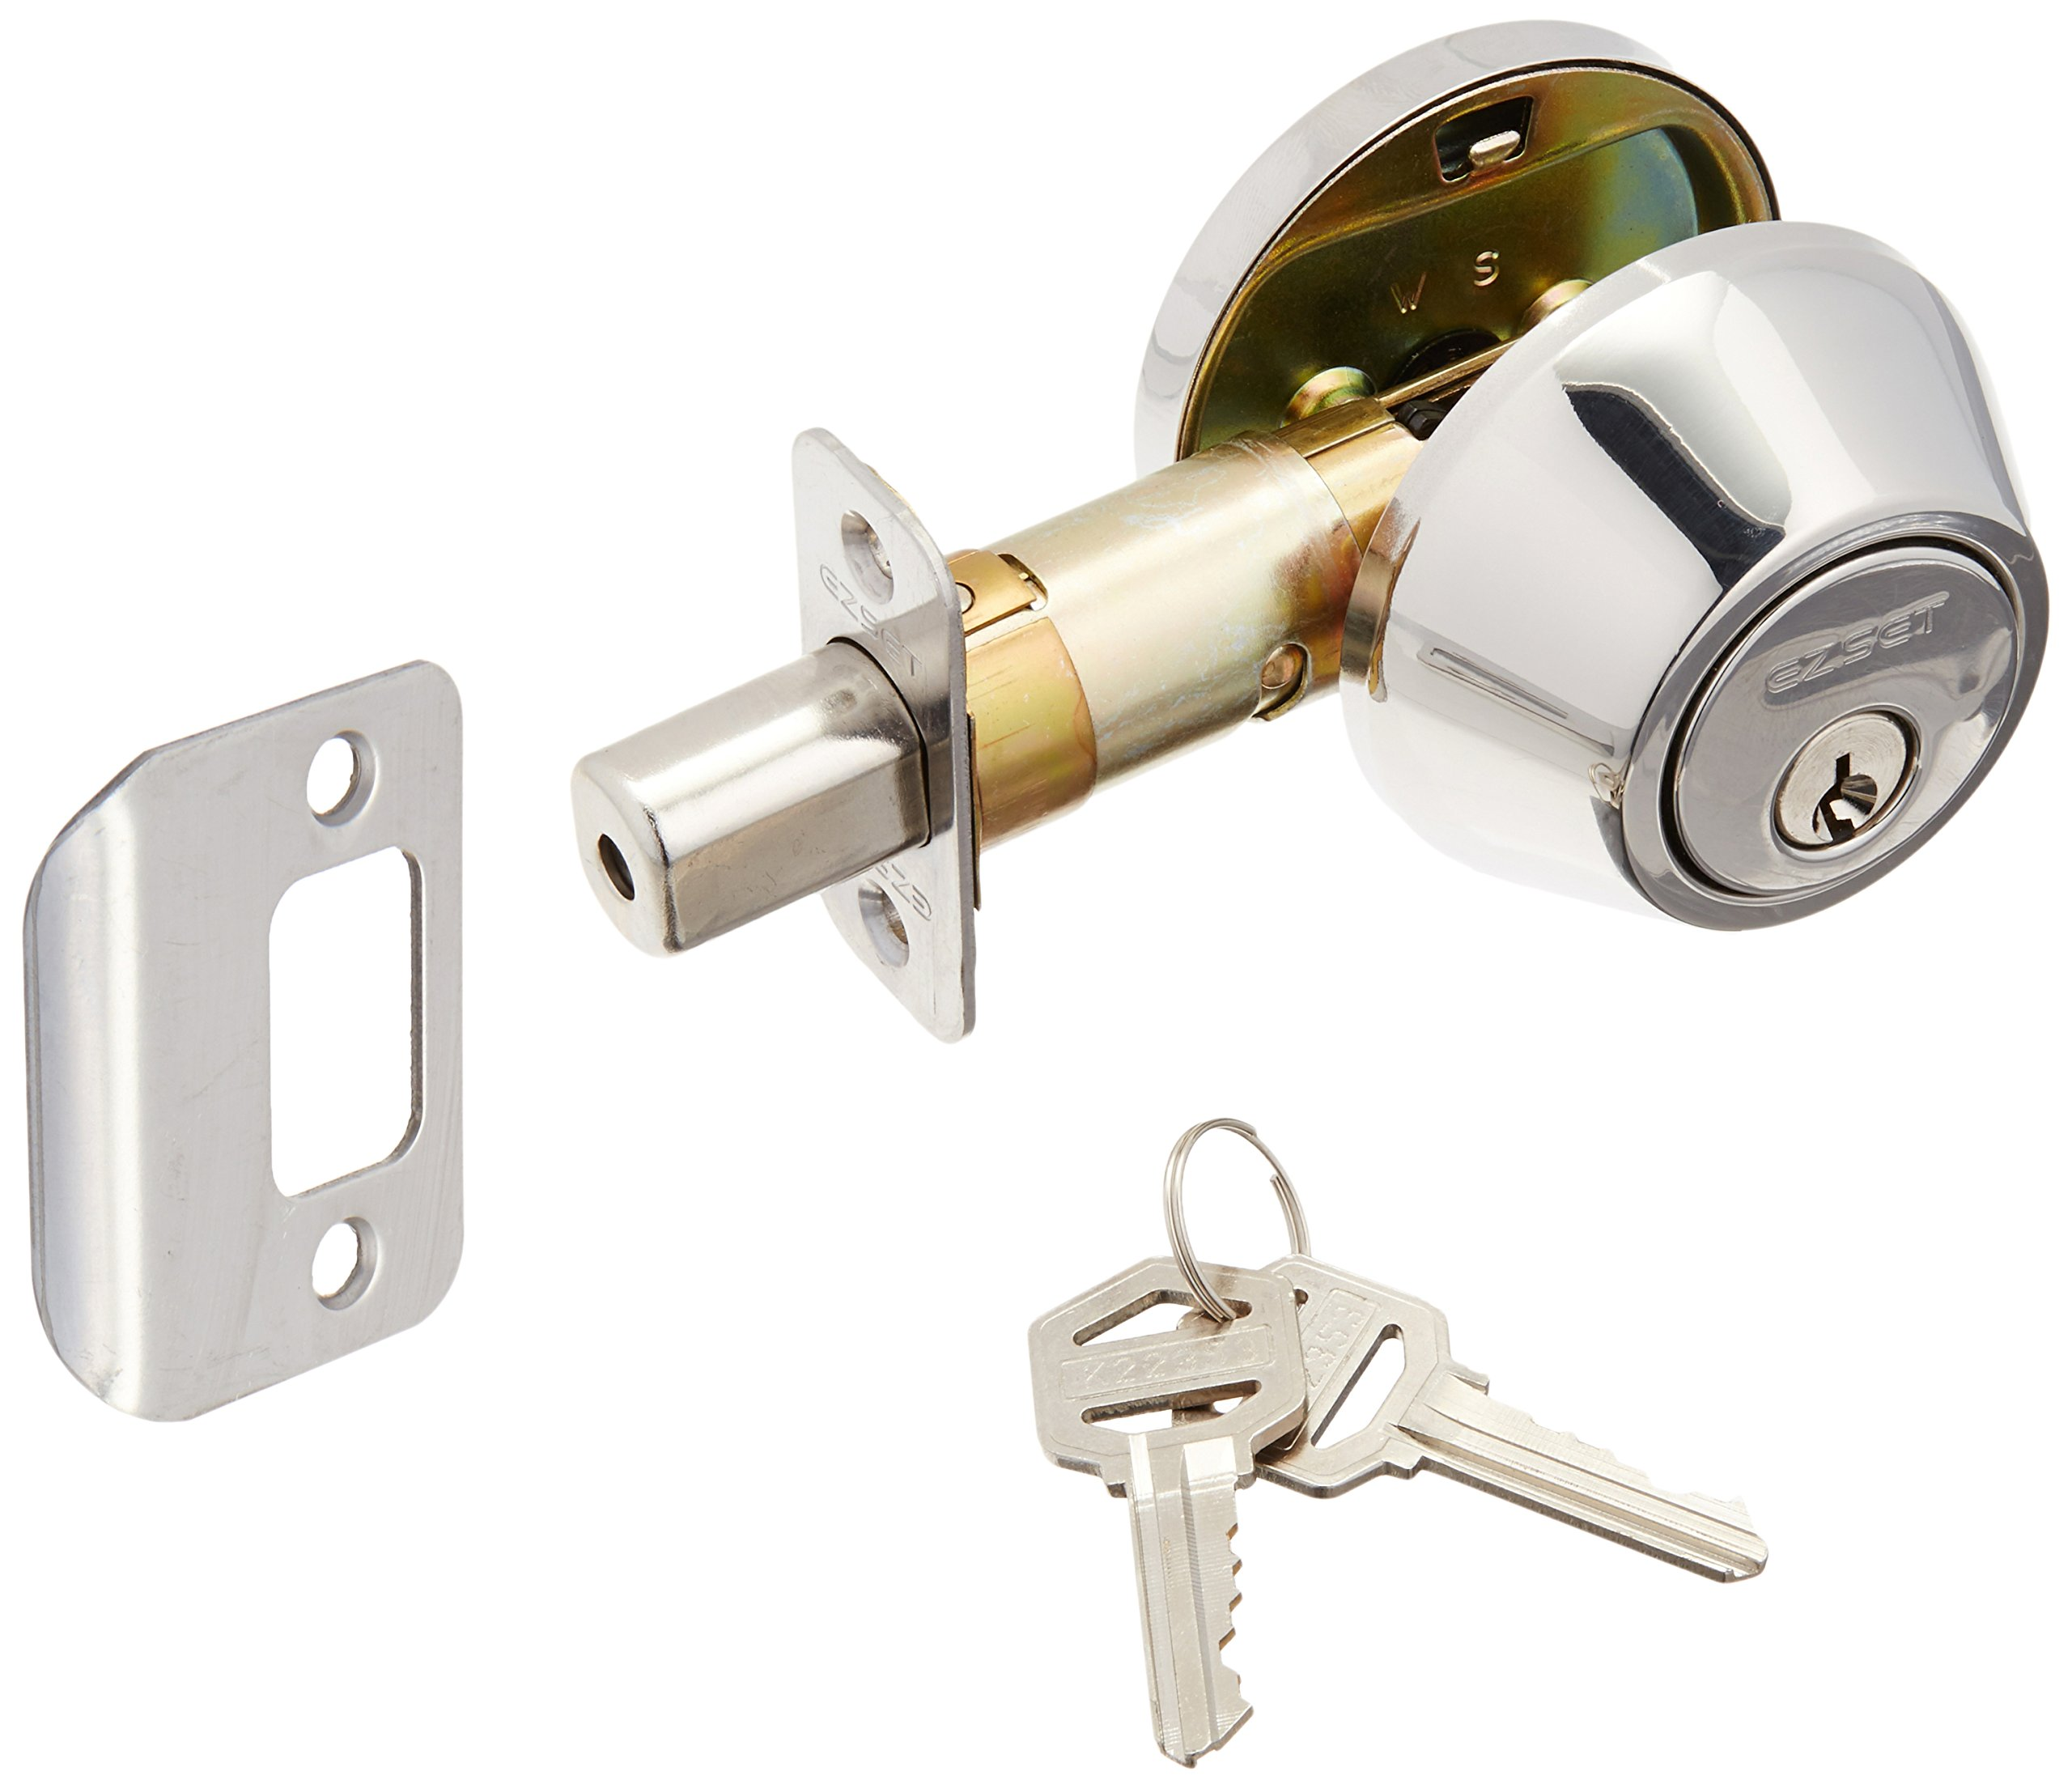 EZ-Set 231006 Single Cylinder Deadbolt by EZ-Set, Polished Chrome